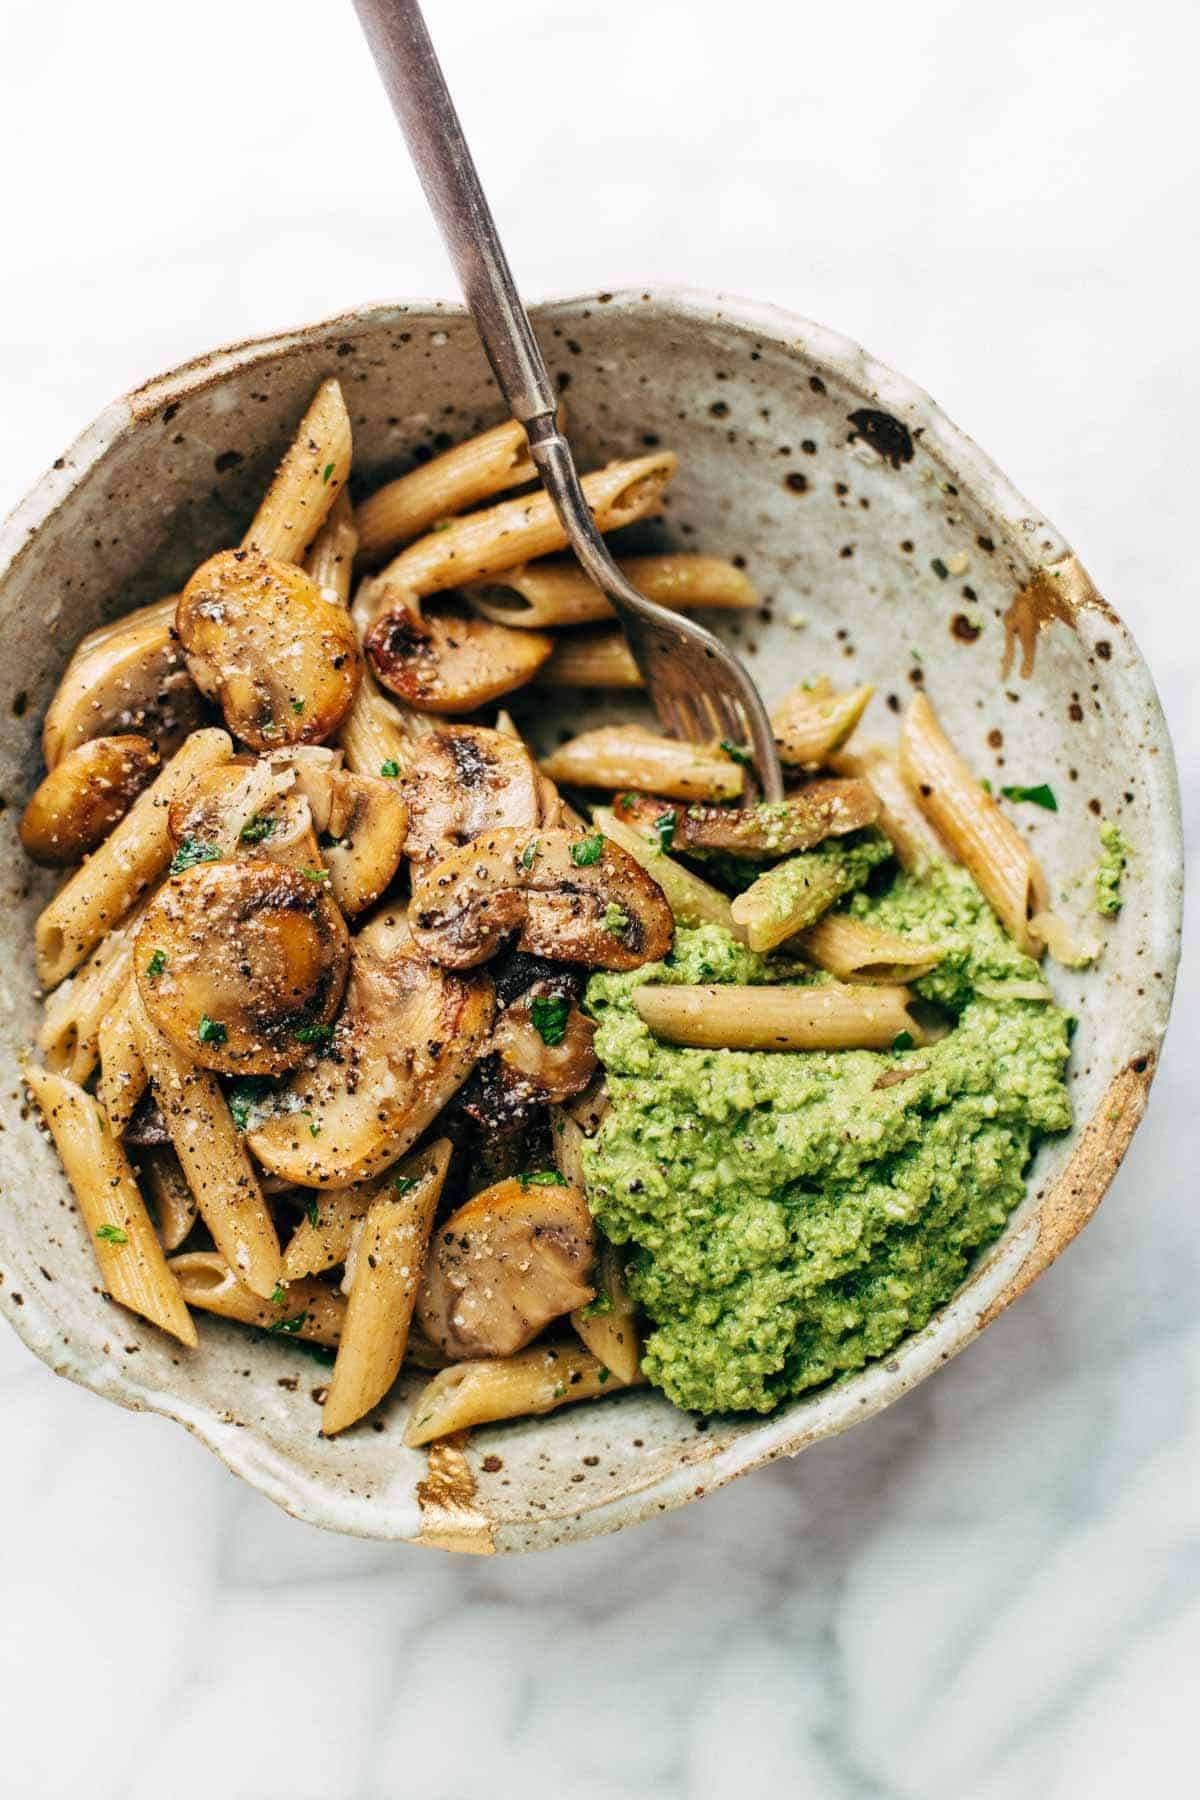 Simple Mushroom Penne with Walnut Pesto - made with easy ingredients like Parmesan cheese, whole wheat penne, mushrooms, garlic, and butter. Vegetarian. | pinchofyum.com